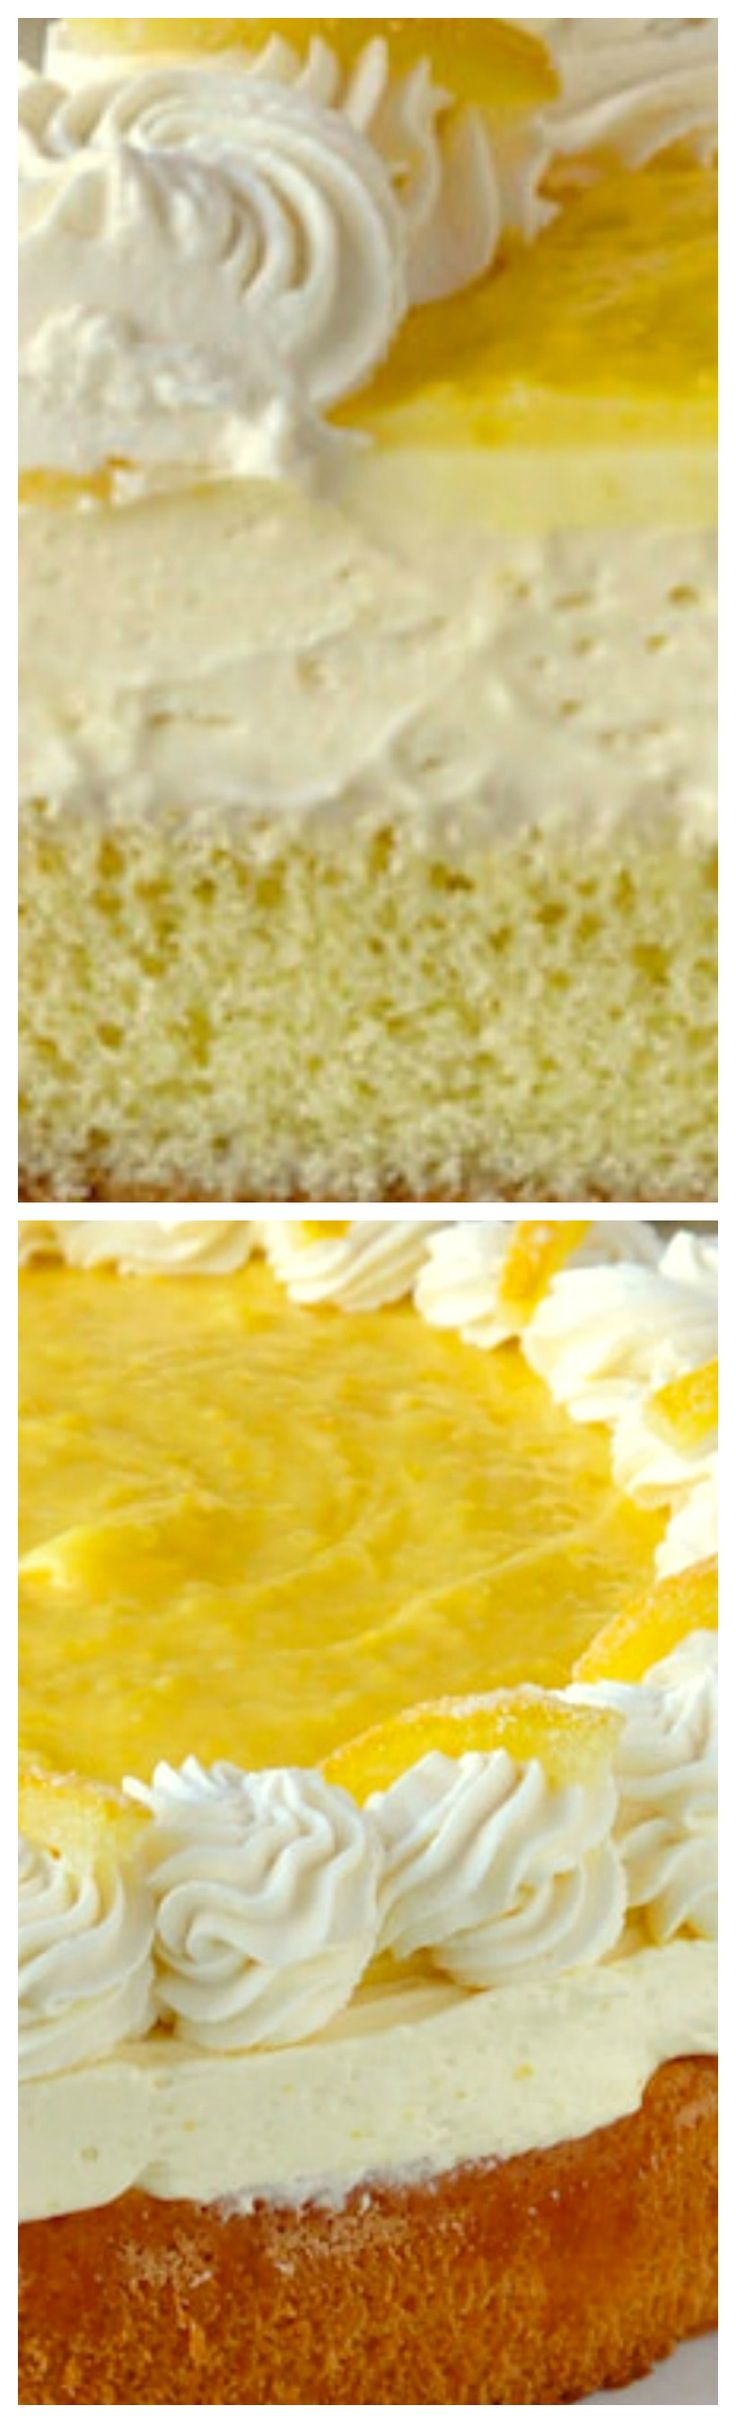 Lemon Mousse Cake ~ Lemon curd and whipped cream sits atop a light as air sponge cake and is then topped with more lemon curd, whipped cream and candied lemon peel.